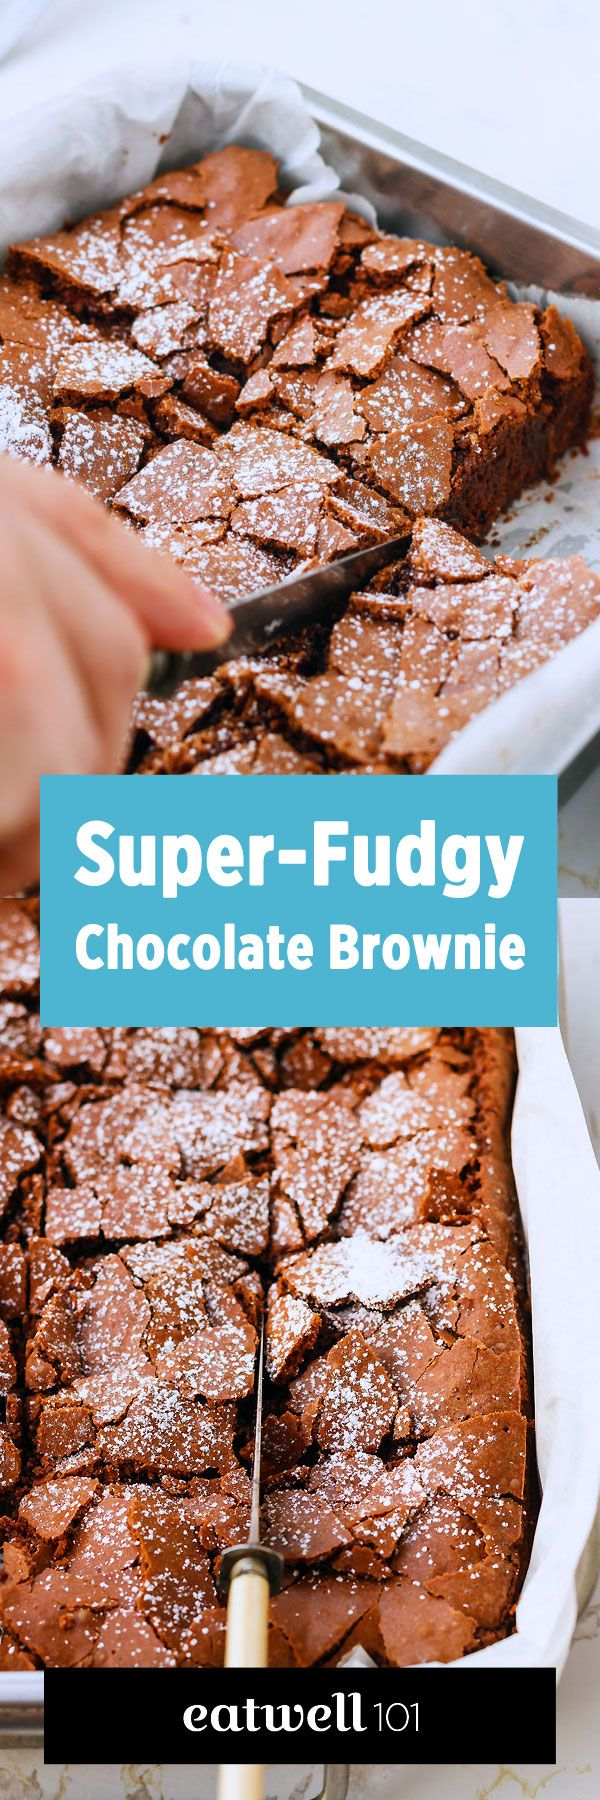 Who doesn't love homemade brownies? Fudgy, chocolatey, gooey, thick… you're warned: this homemade brownie recipe is totally addictive. We guarantee you can't eat just one square of this decadent de…